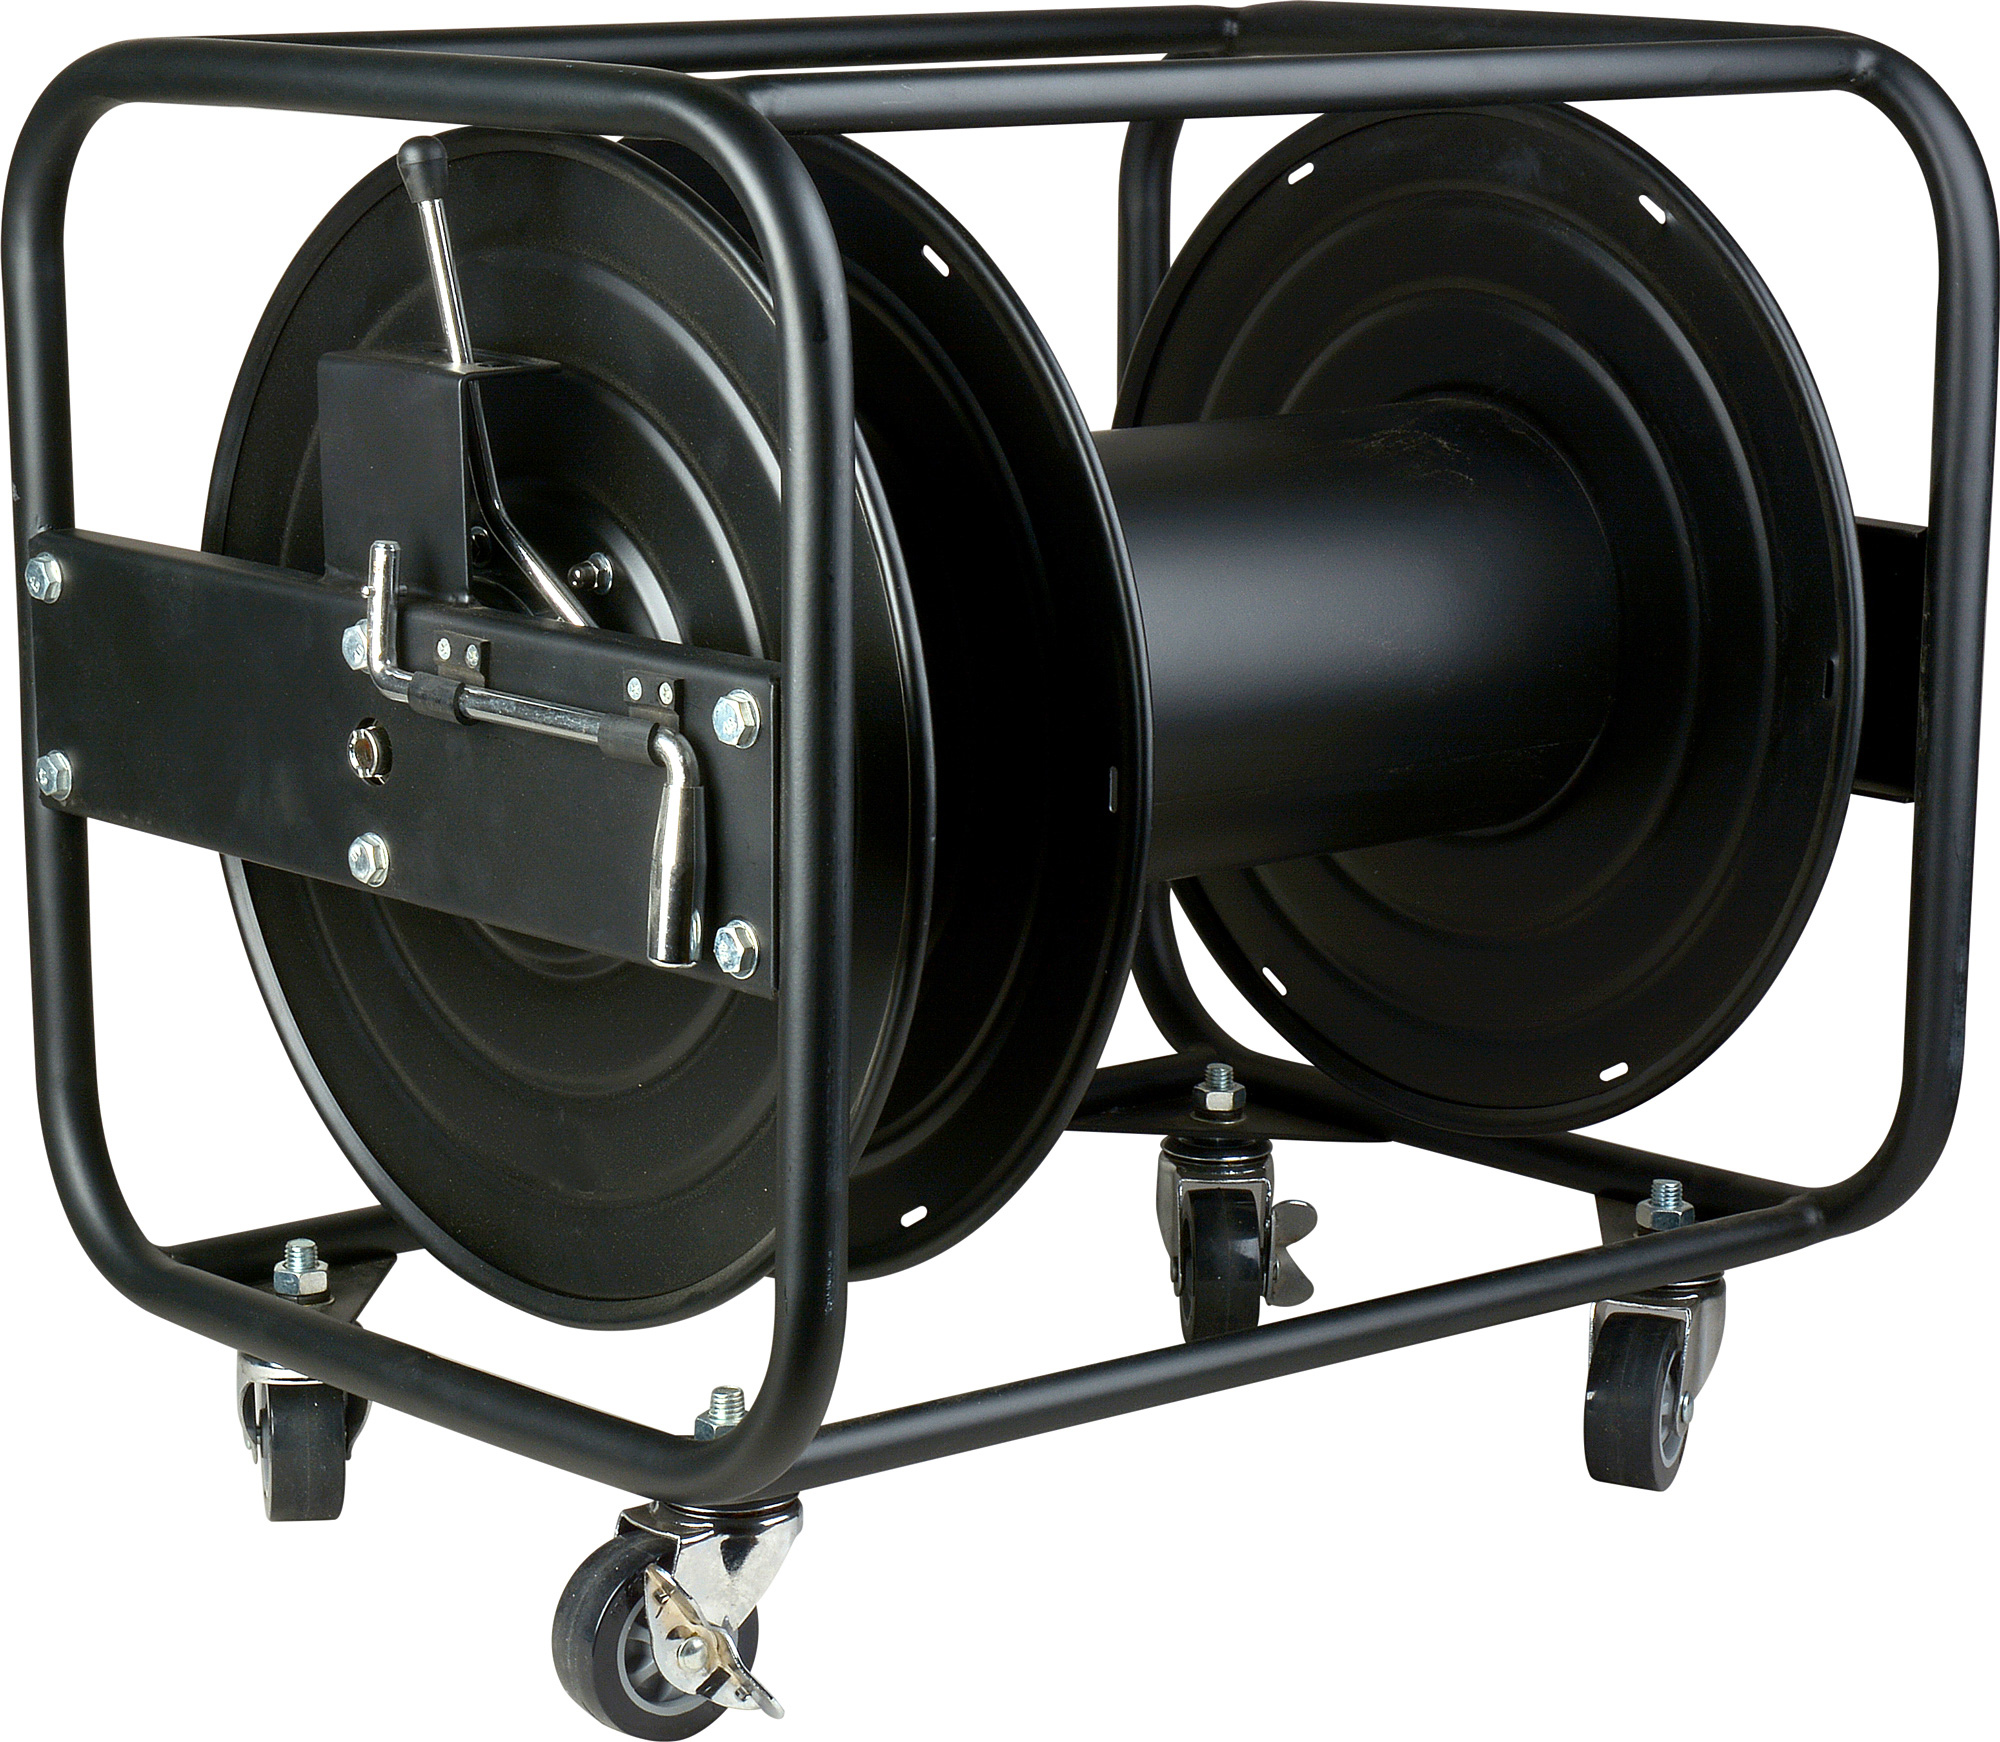 Cable Reels Product : Jackreel xl high capacity broadcast cable fiber optic